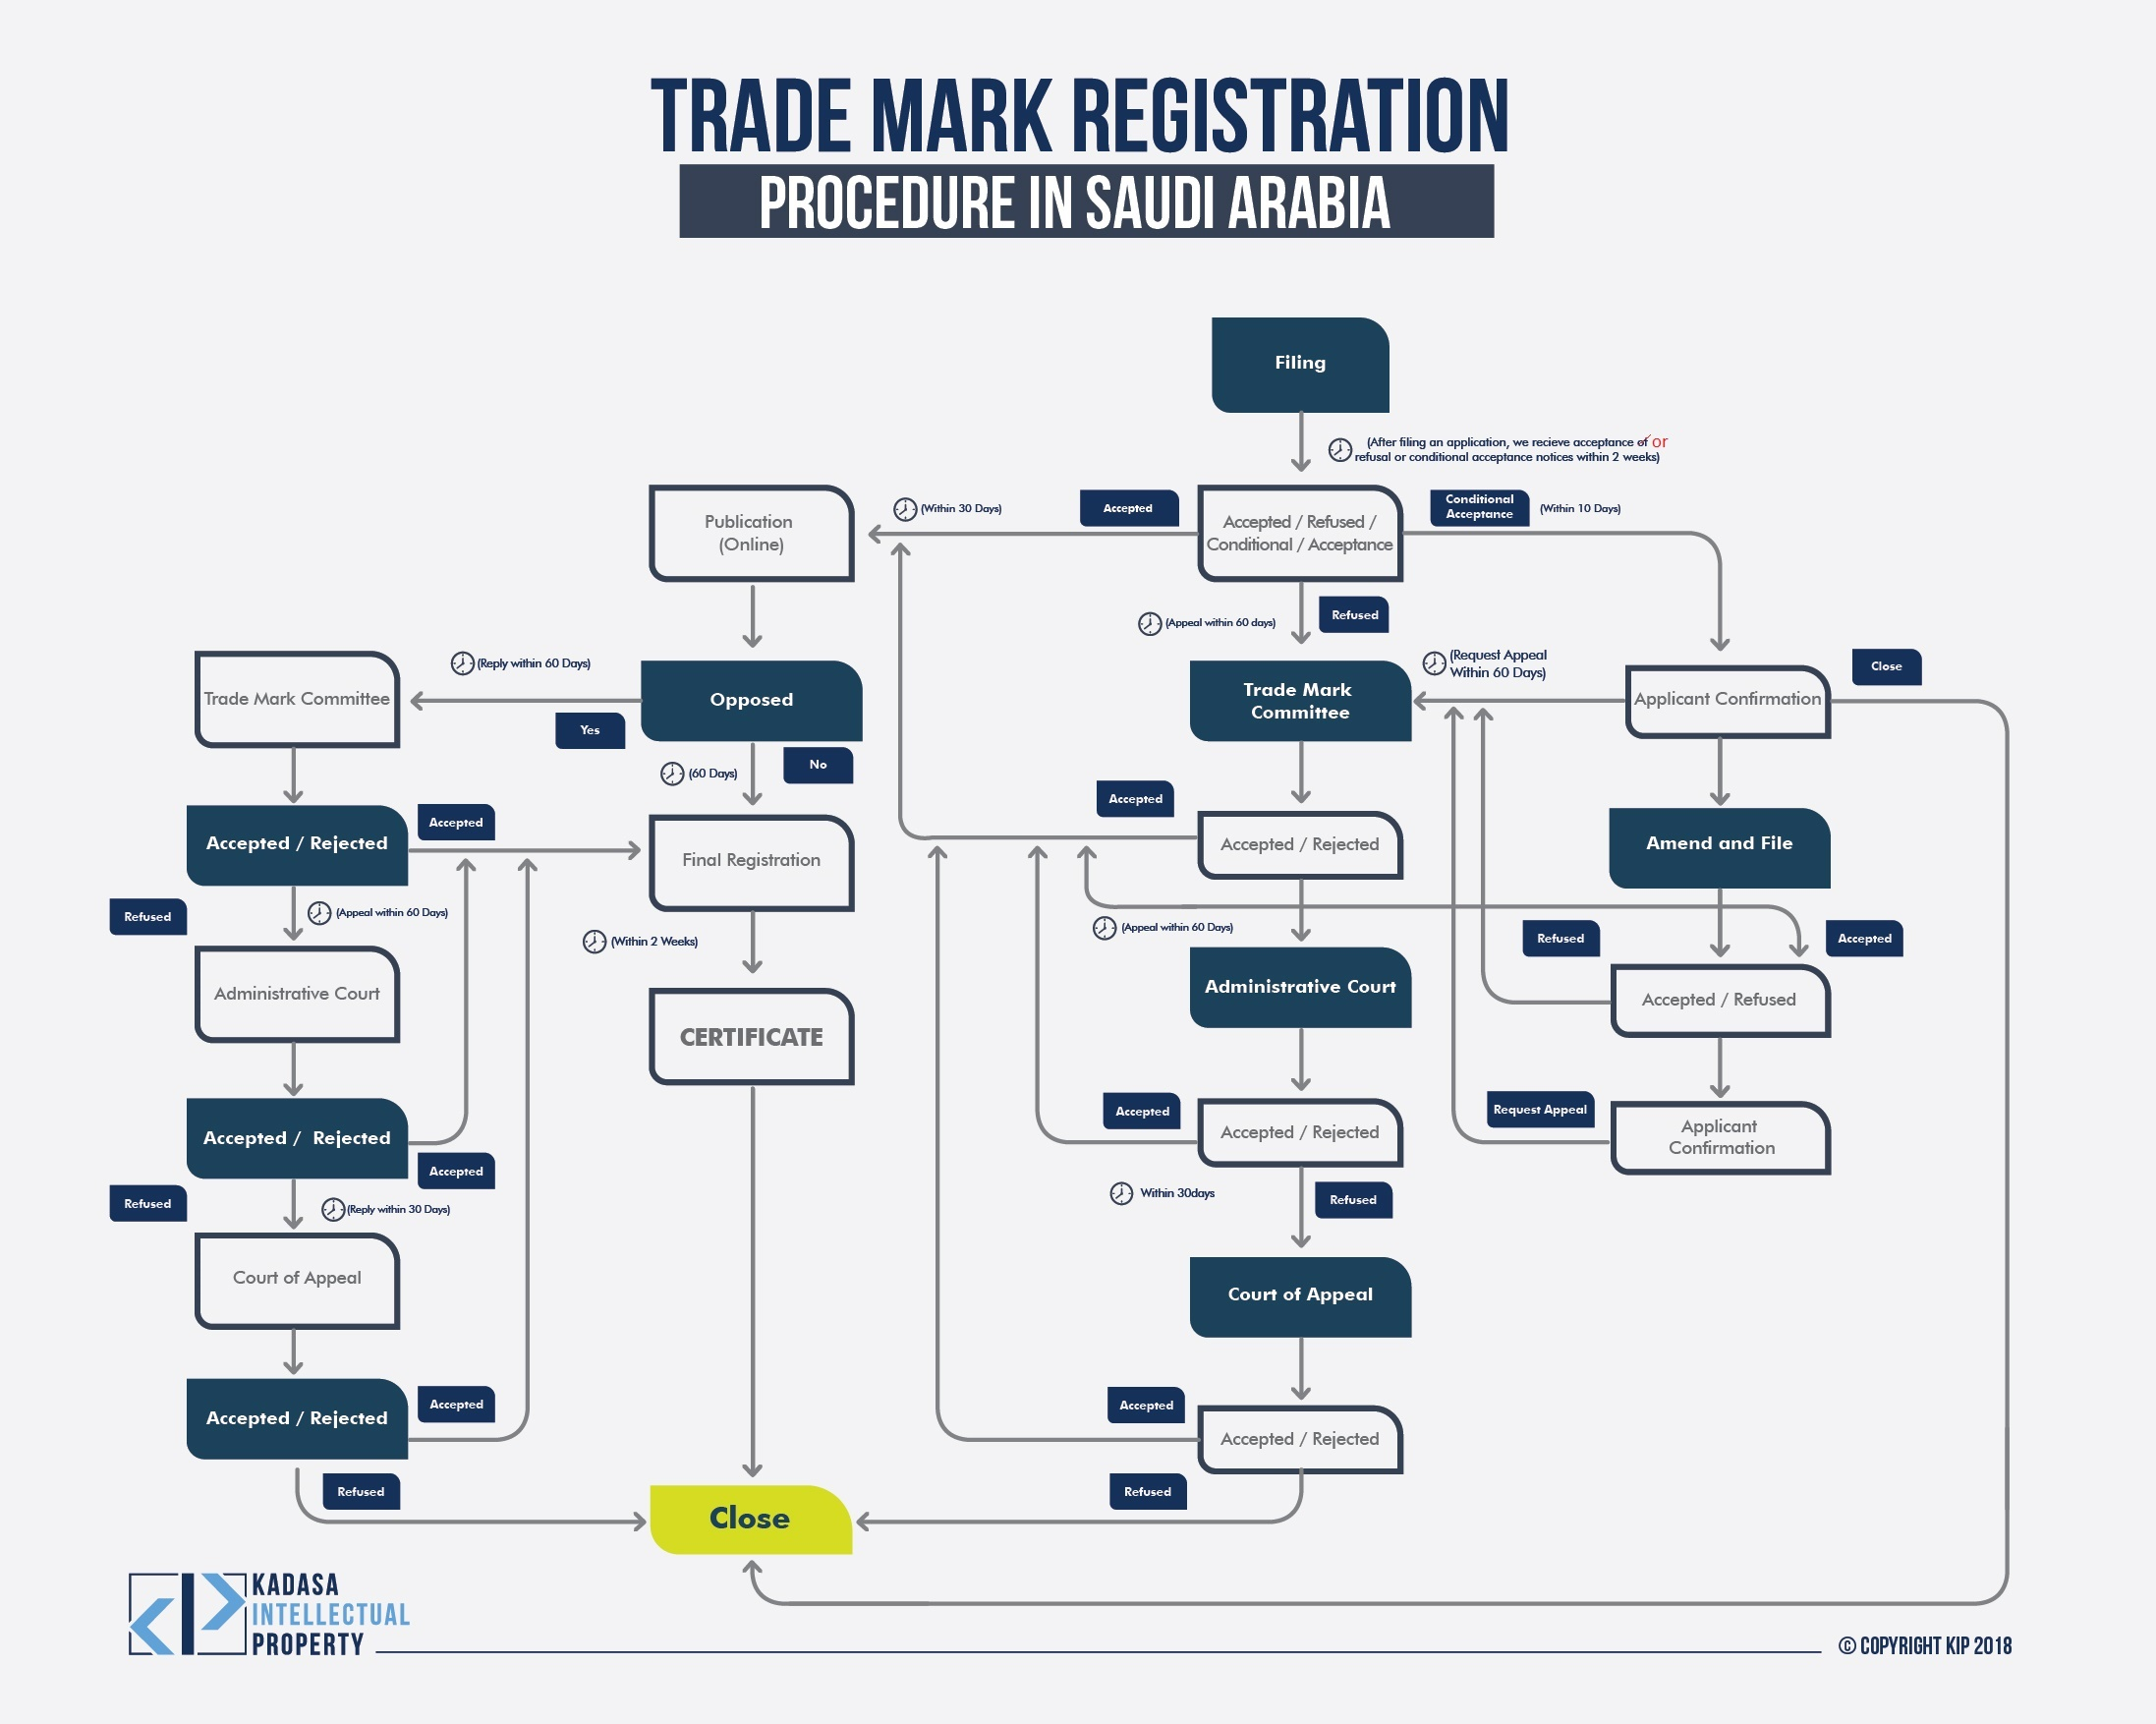 Trademark Protection in Saudi Arabia Process